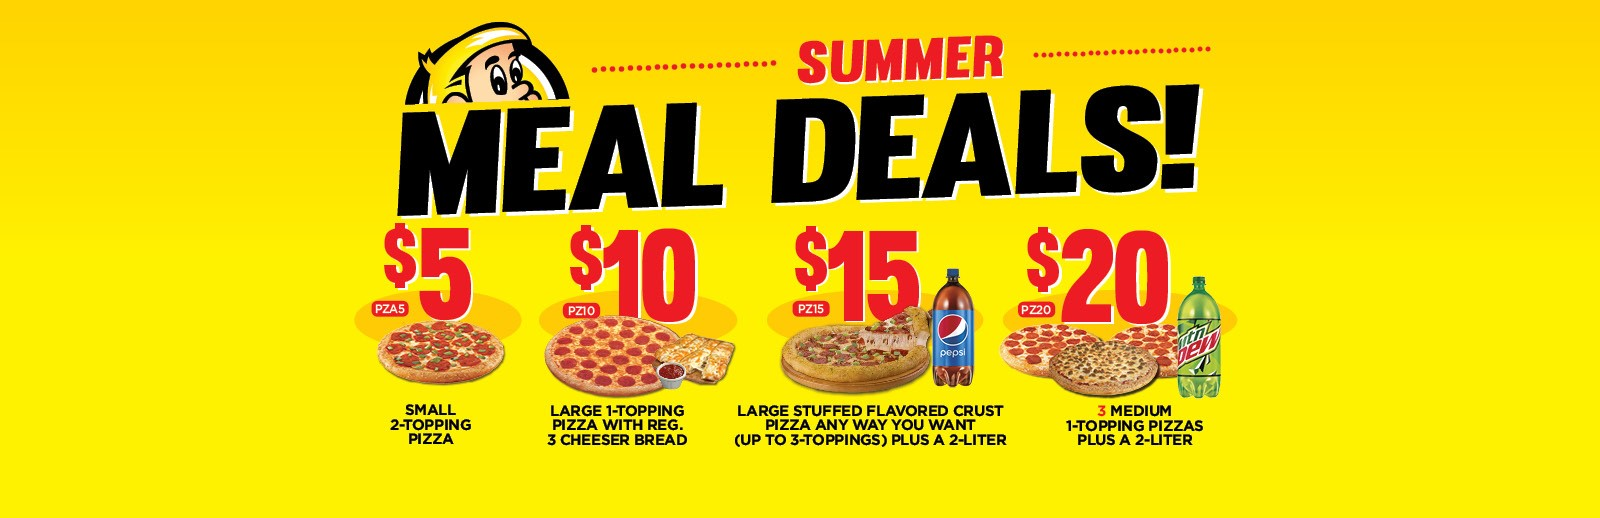 Summer Howies Deal Options